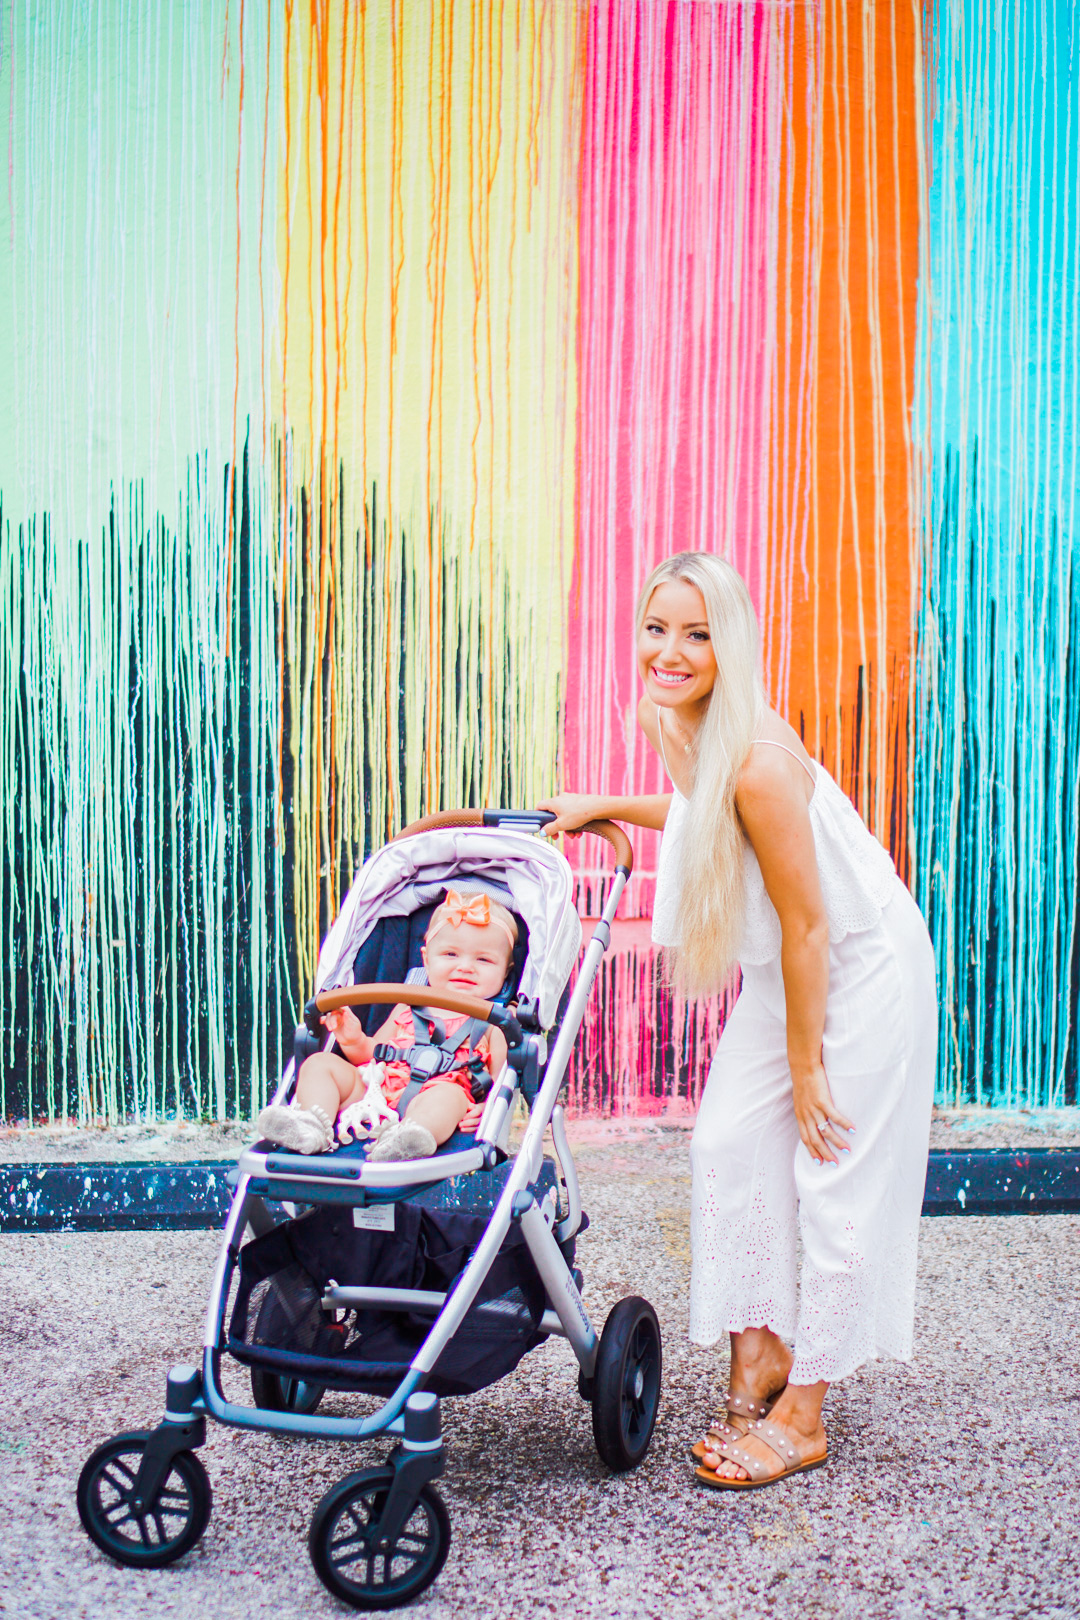 Katelyn Jones A Touch of Pink Blog 2017 Uppababy Vista Stroller Review buybuybaby